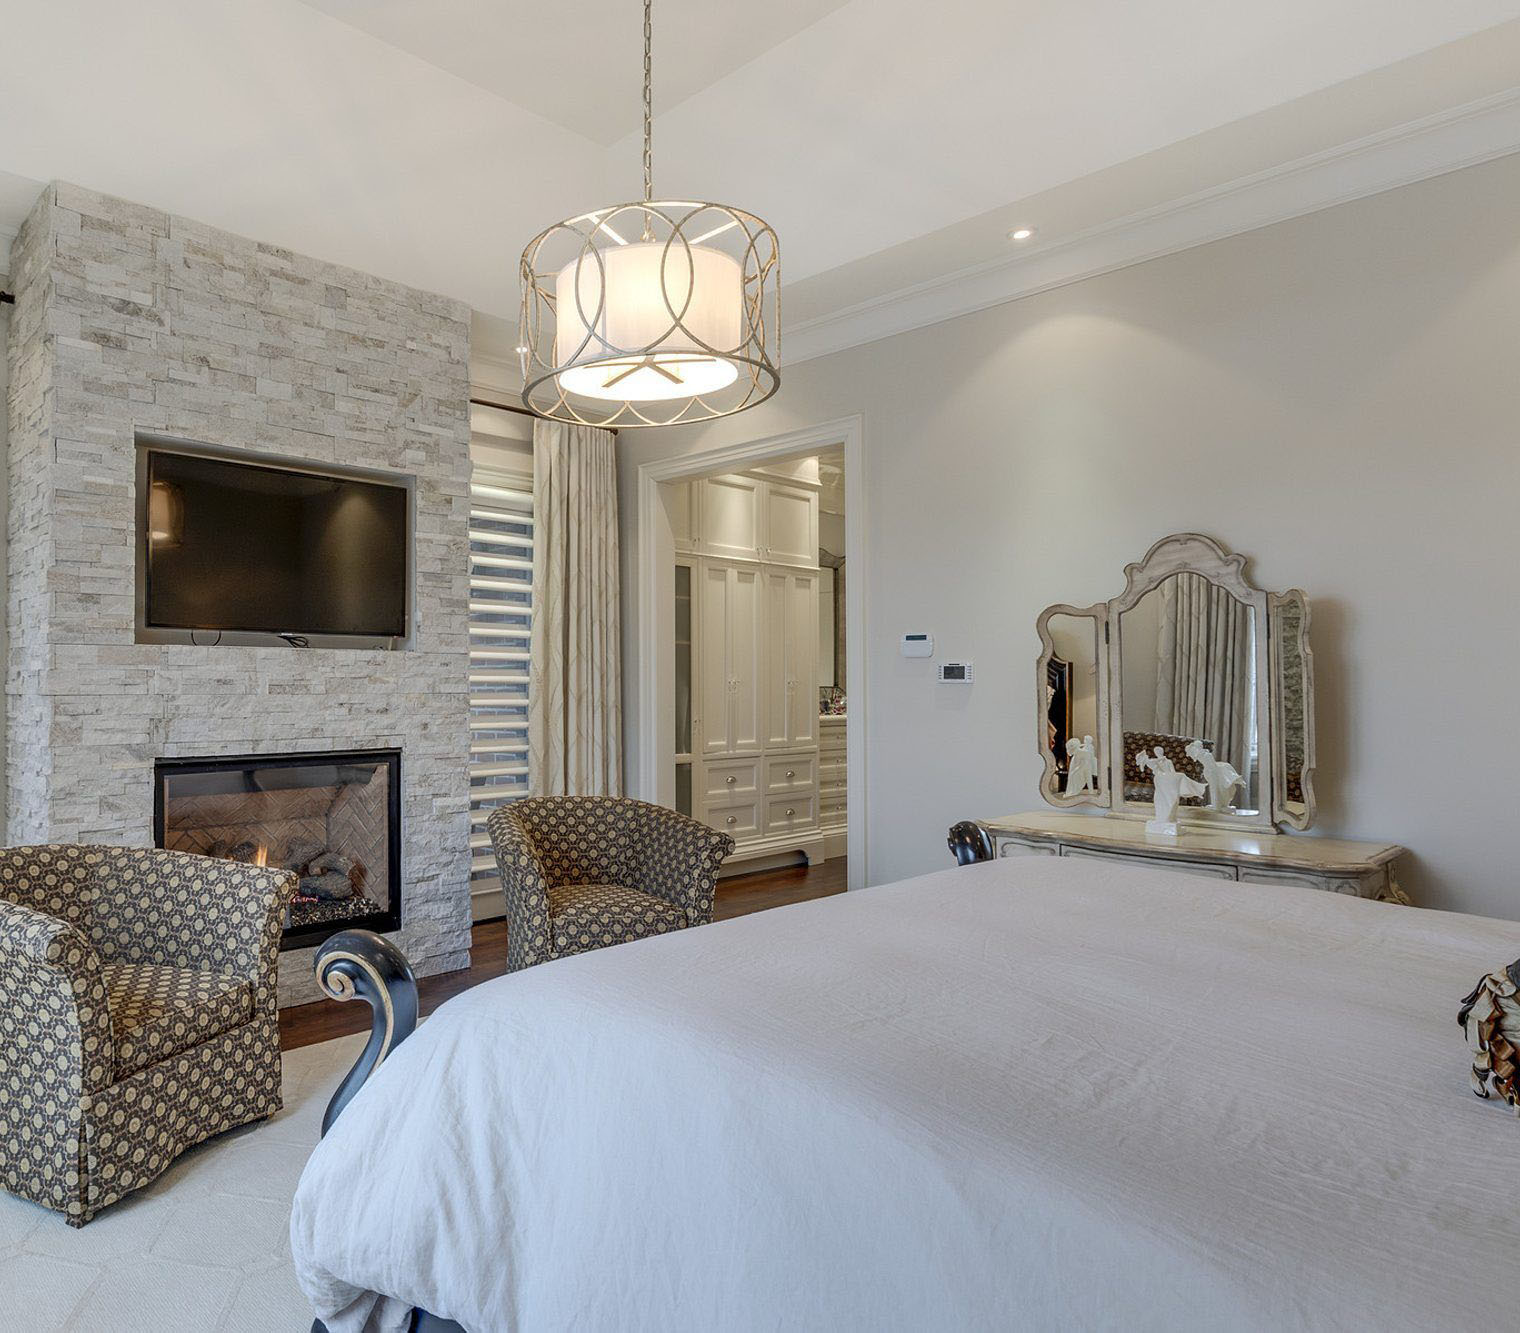 White ledgestone used to build a fireplace surround is a modern look that works well in a bedroom. fireplace design ideas.